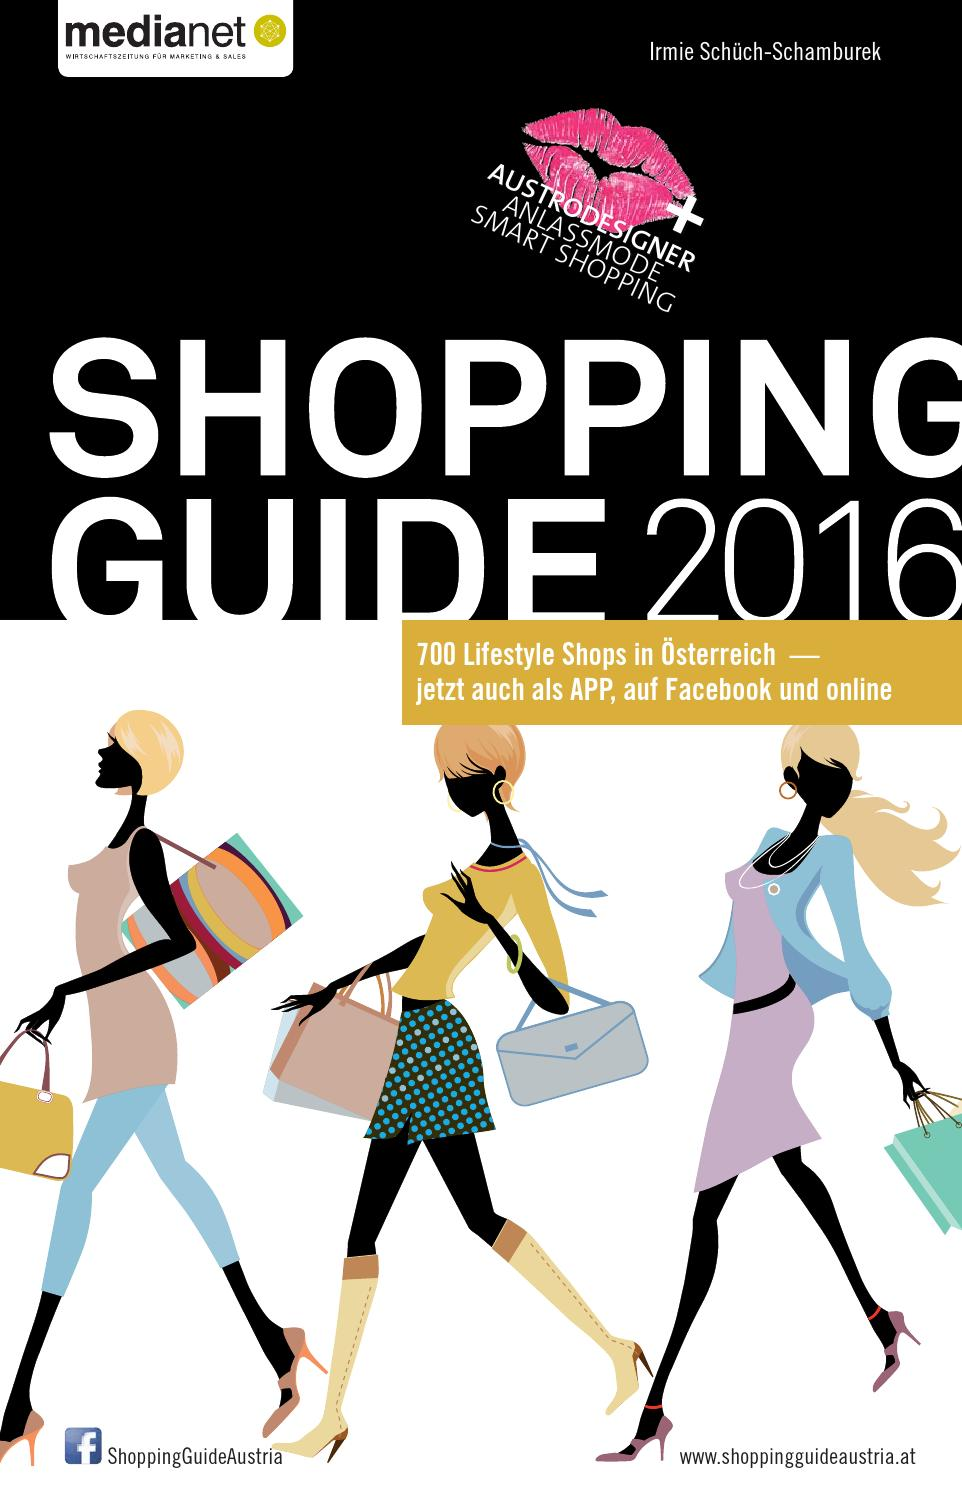 medianet issuu Guide by 2016 Shopping S4Ac5Rq3Lj